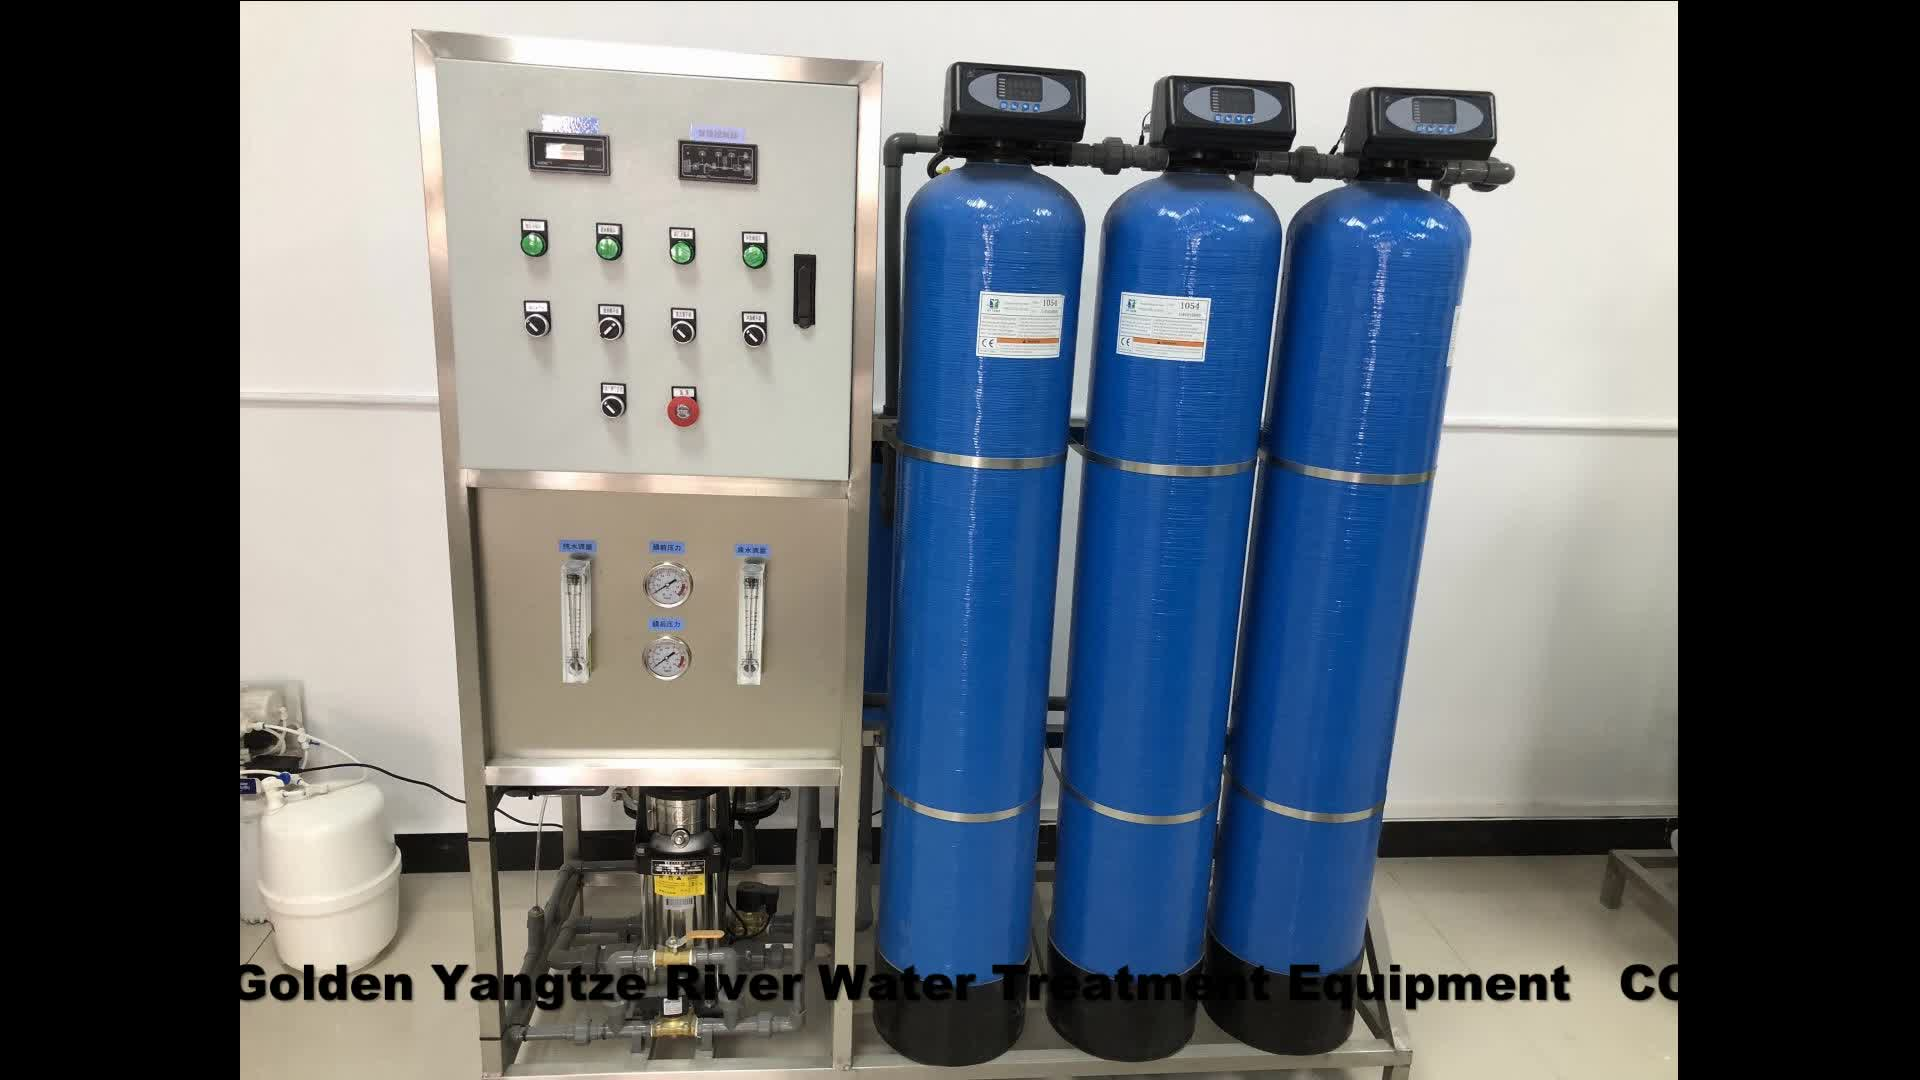 Automatic Control RO Water Treatment equipment,Underground Water Purifier to Deionized water for industry